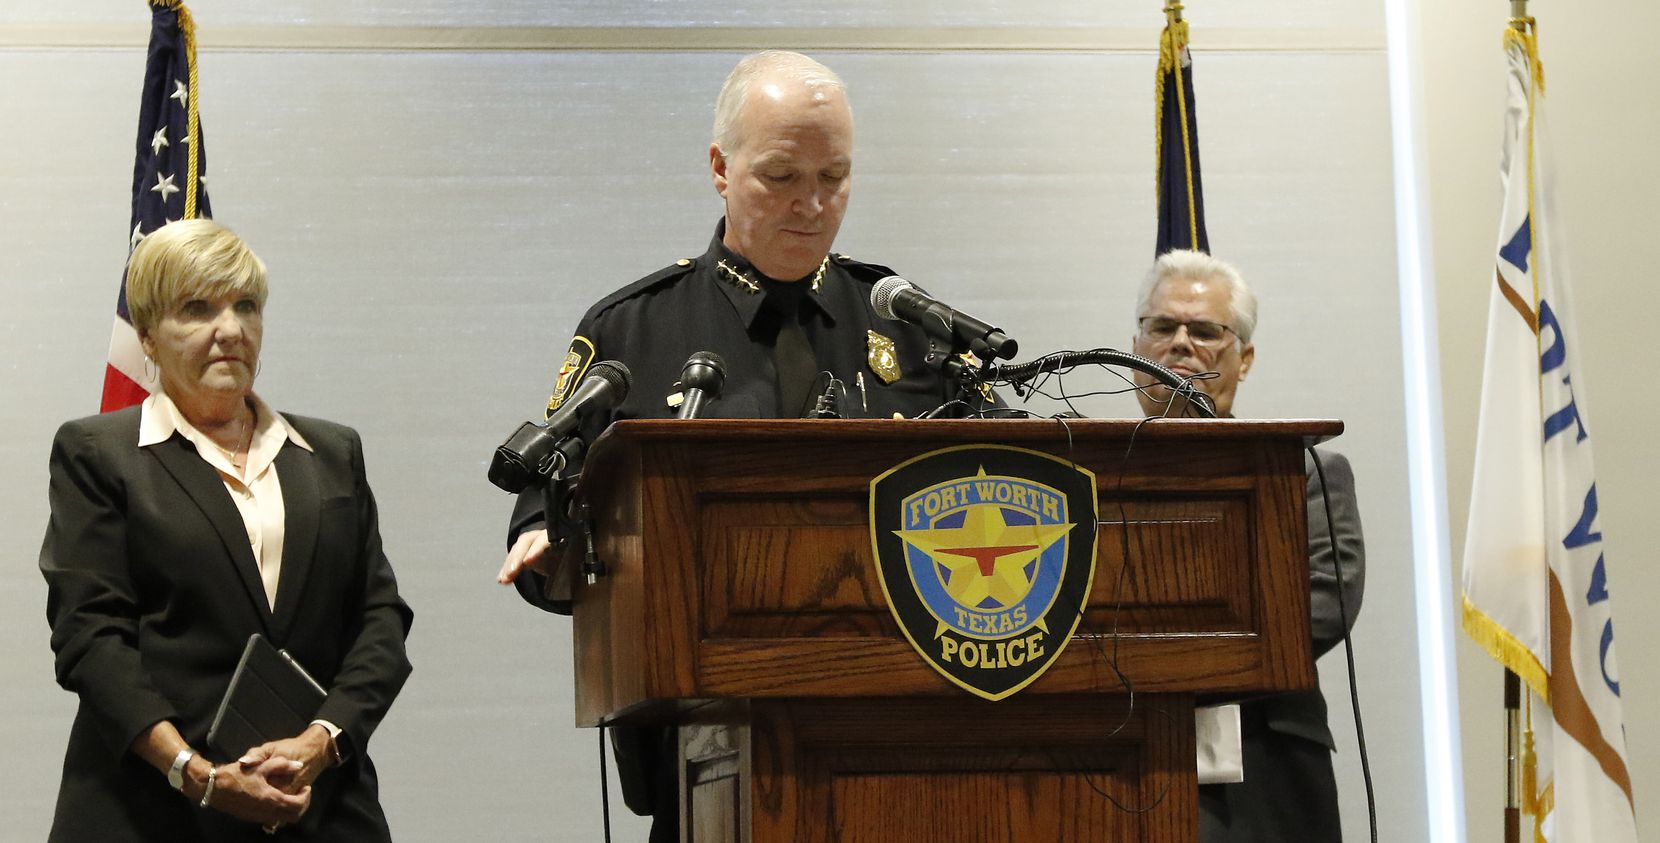 Ft Worth Mayor Betsy Price, left, as to Interim Police Chief Ed Kraus, talks during the Fort Worth Police Department's press conference about the officer involved shooting of Atatiana Jefferson at the Bob Bolen Public Safety Complex on Monday, October 14, 2019 in Fort Worth, Texas.